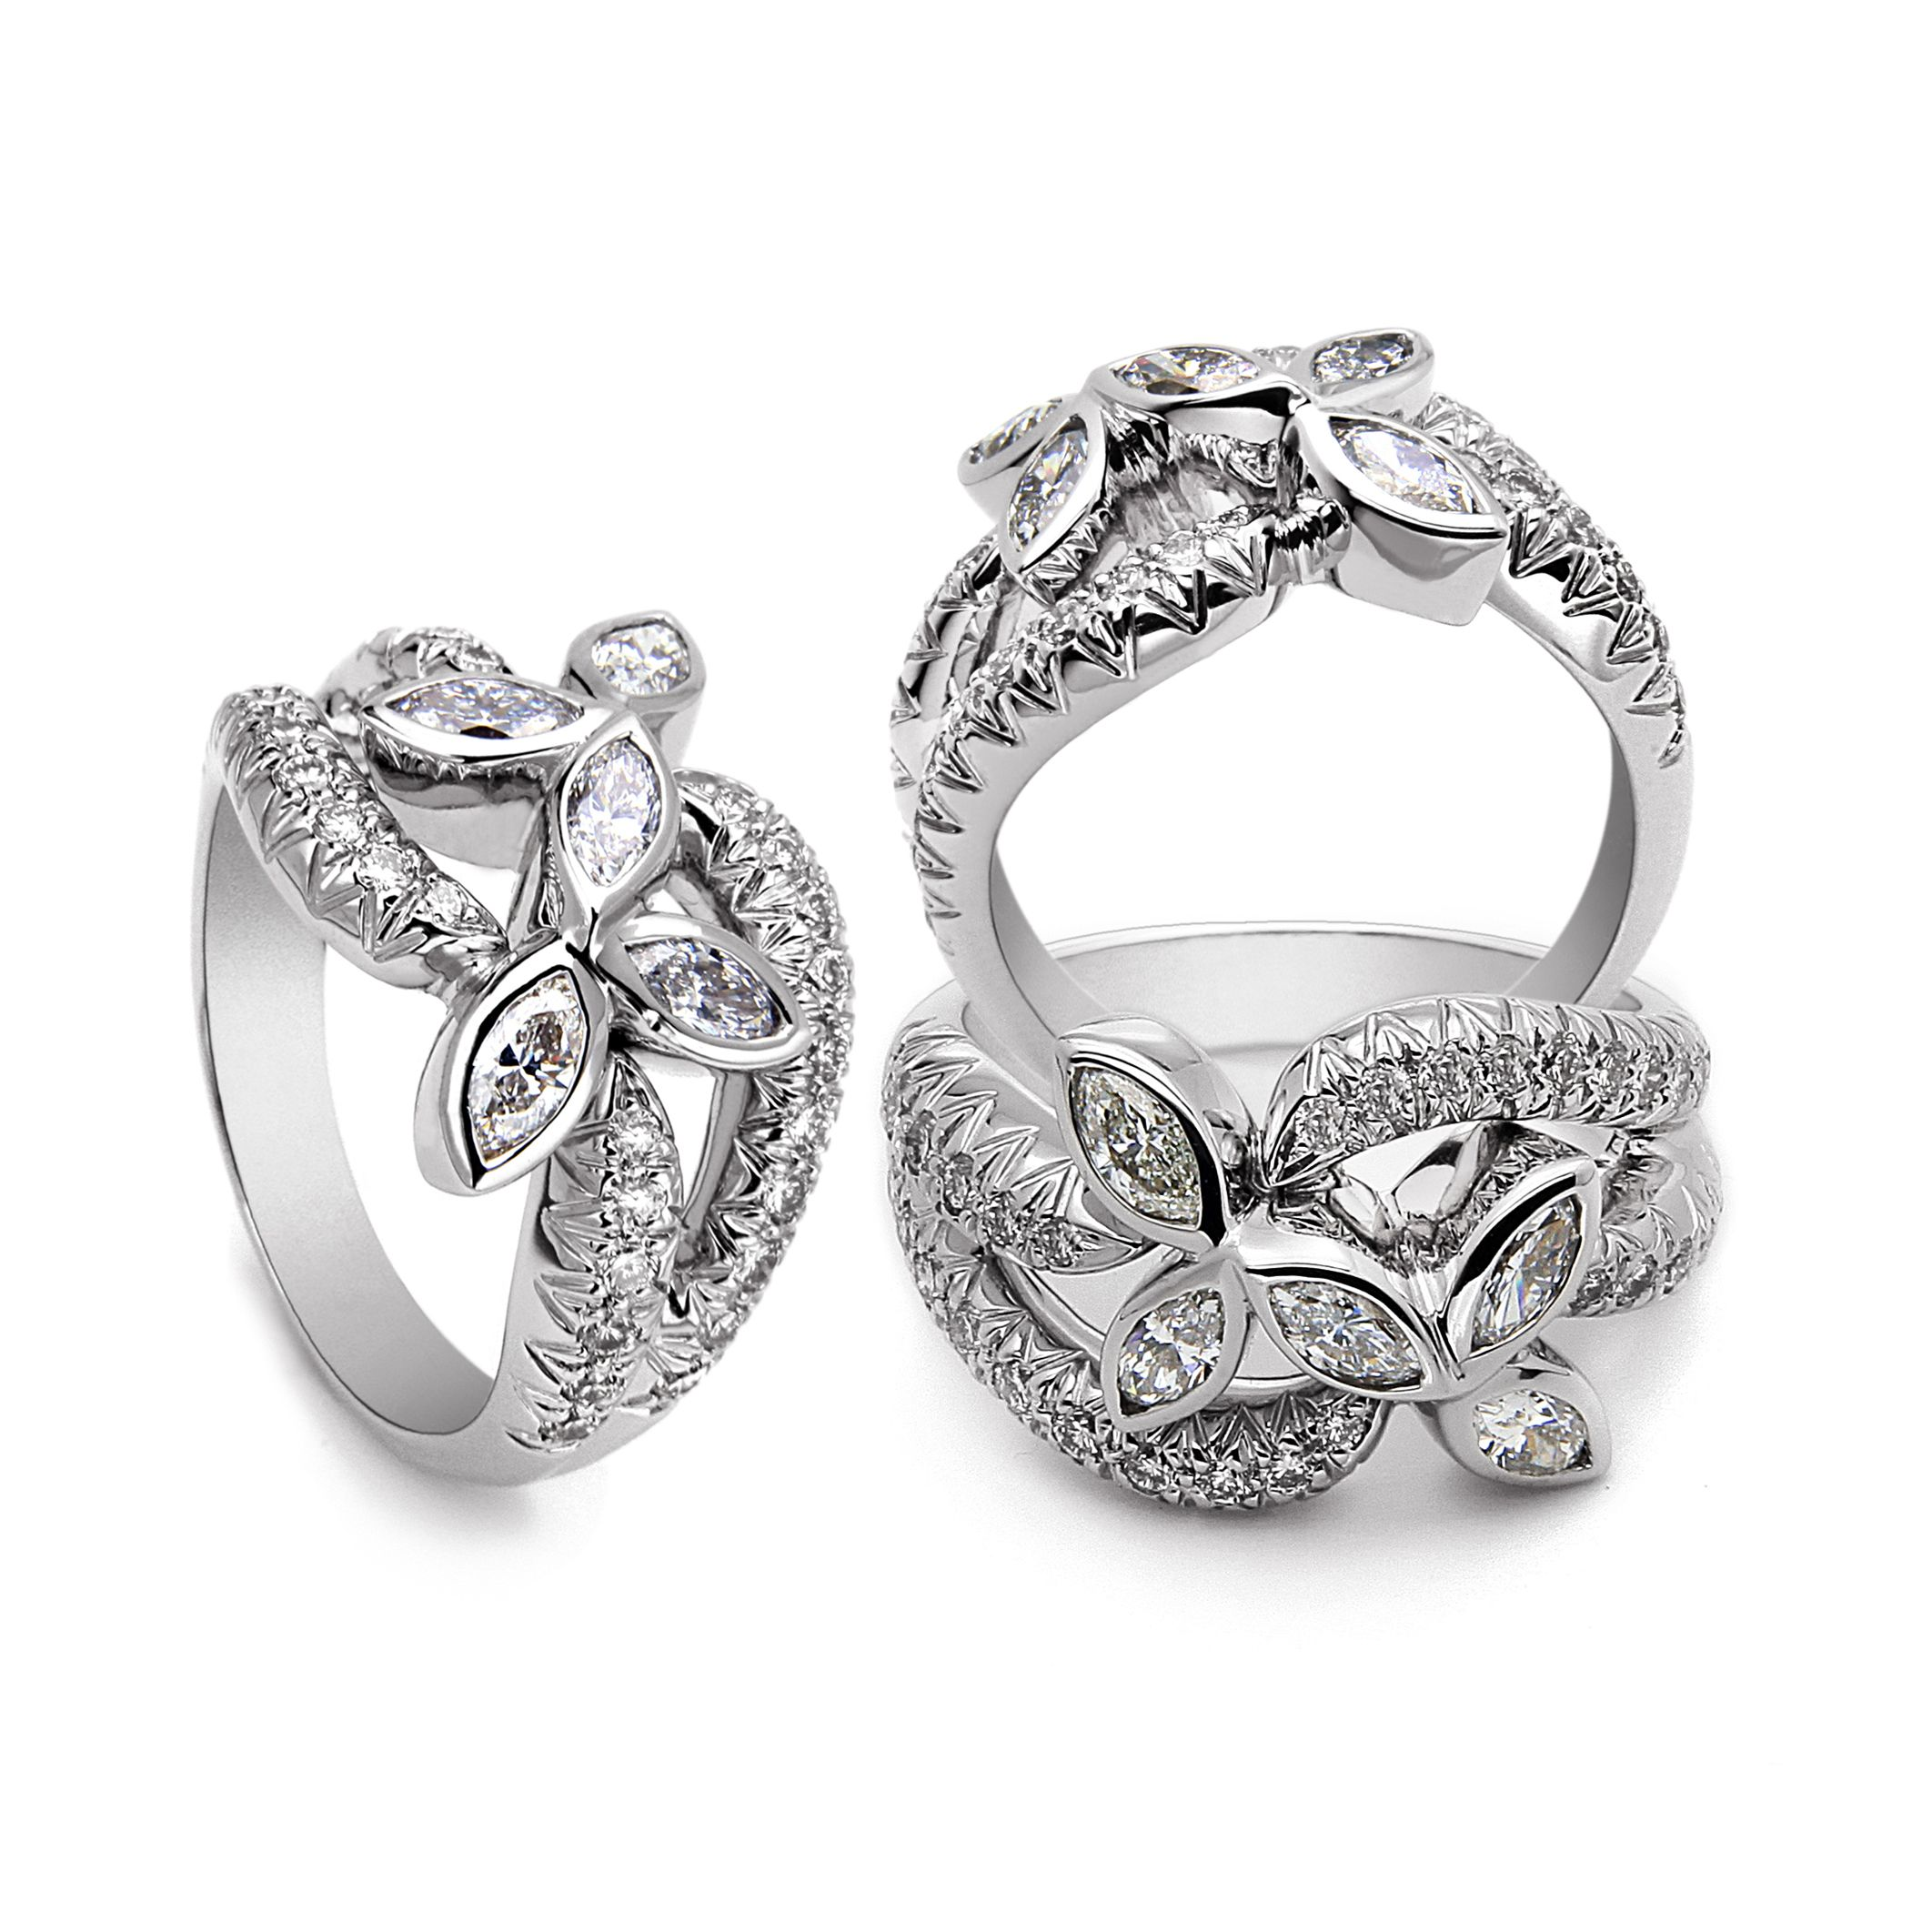 ring mq regent engagement on cut marquise jewelers angle rings carat diamond products